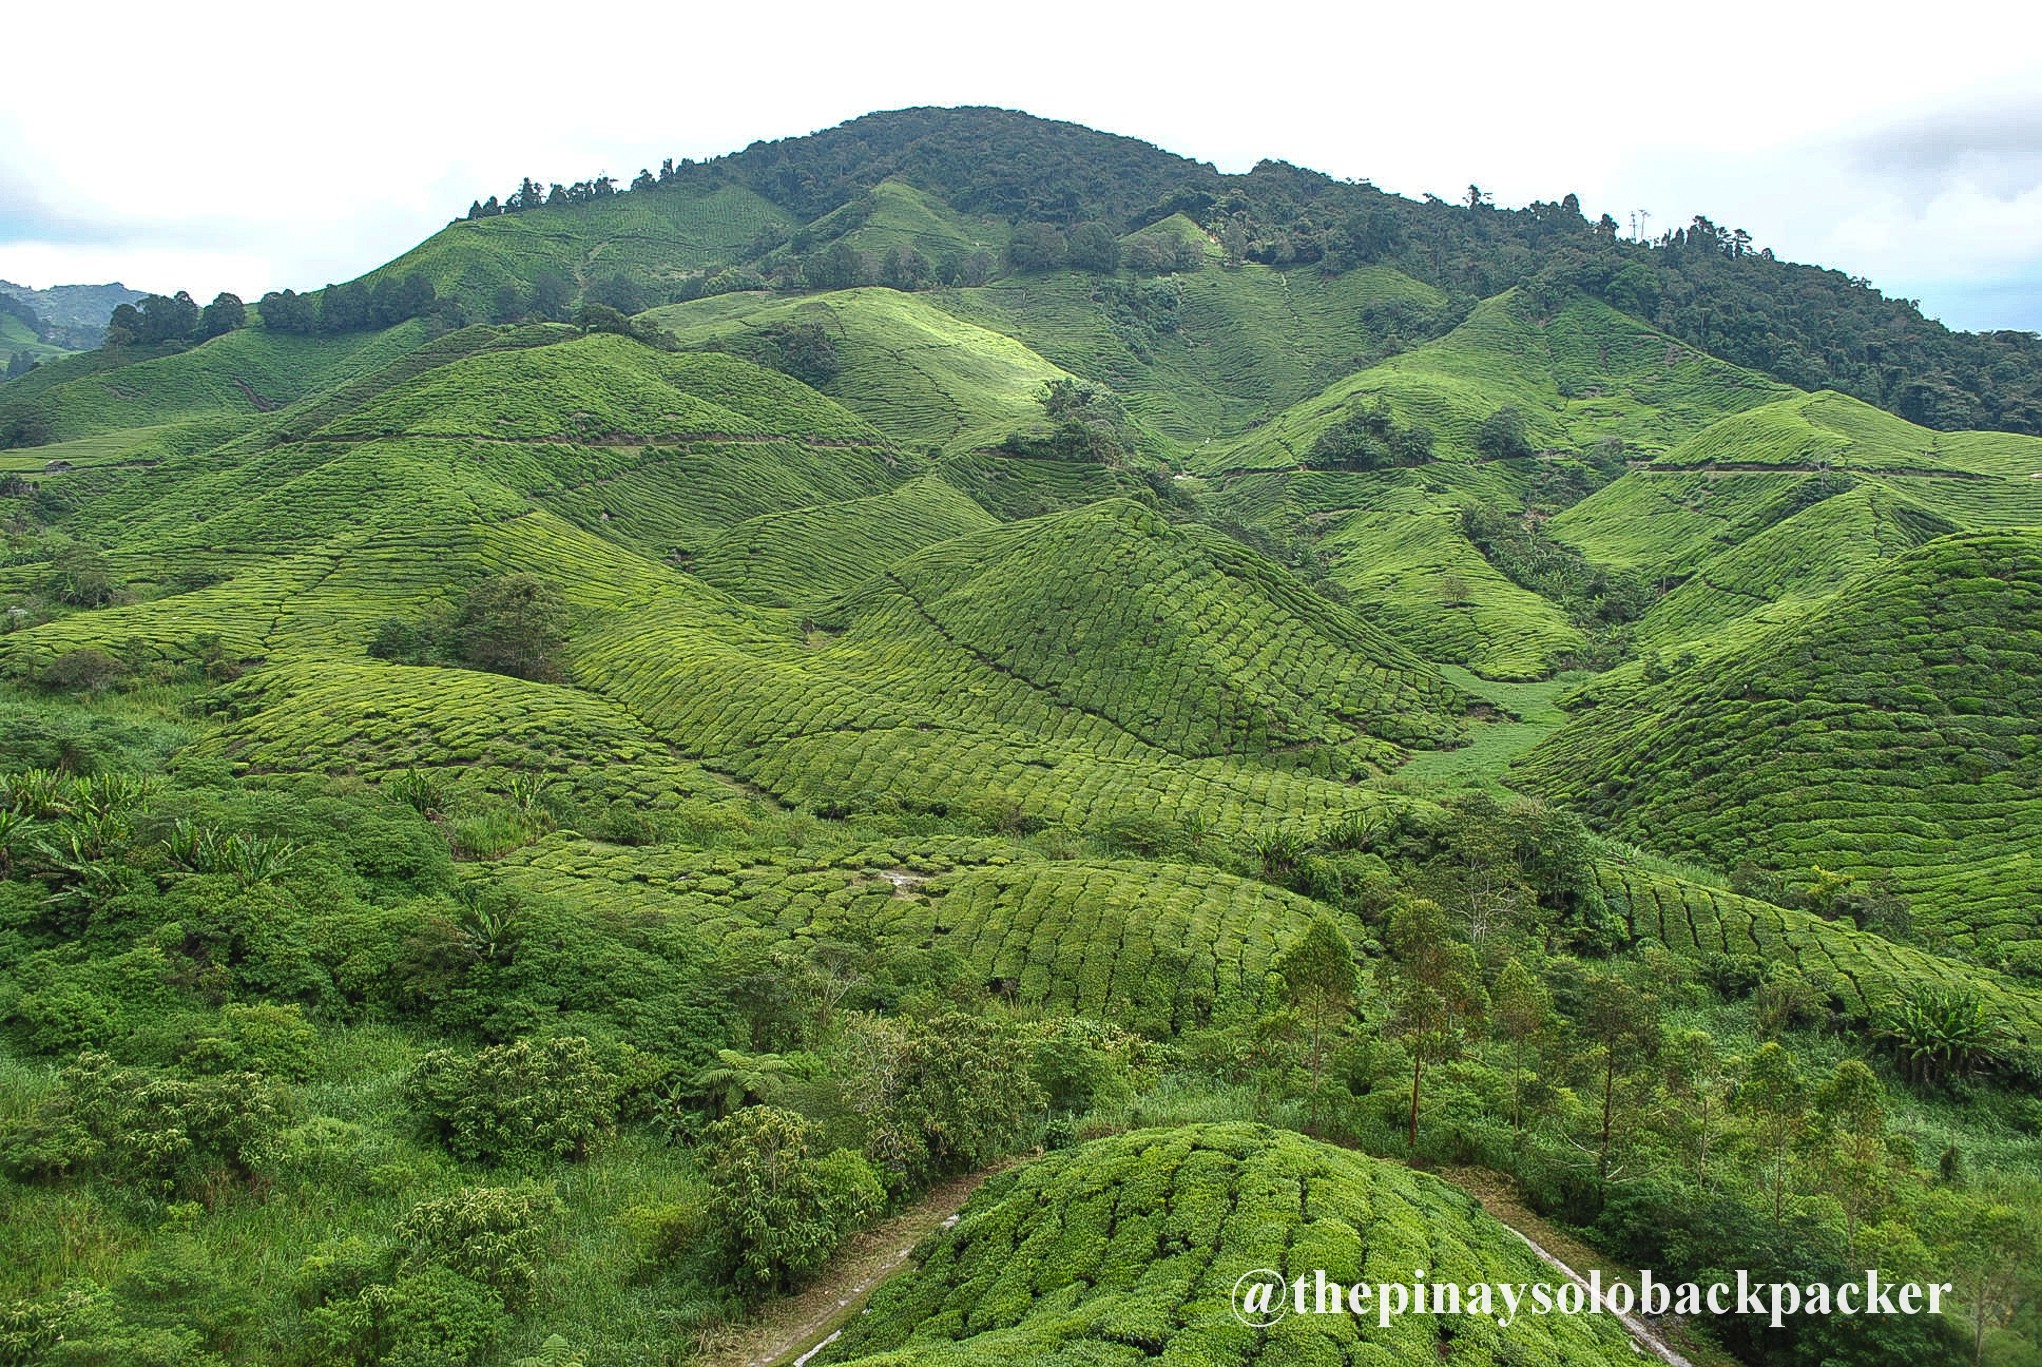 CAMERON HIGHLANDS TRAVEL GUIDE (Budget + Itinerary)